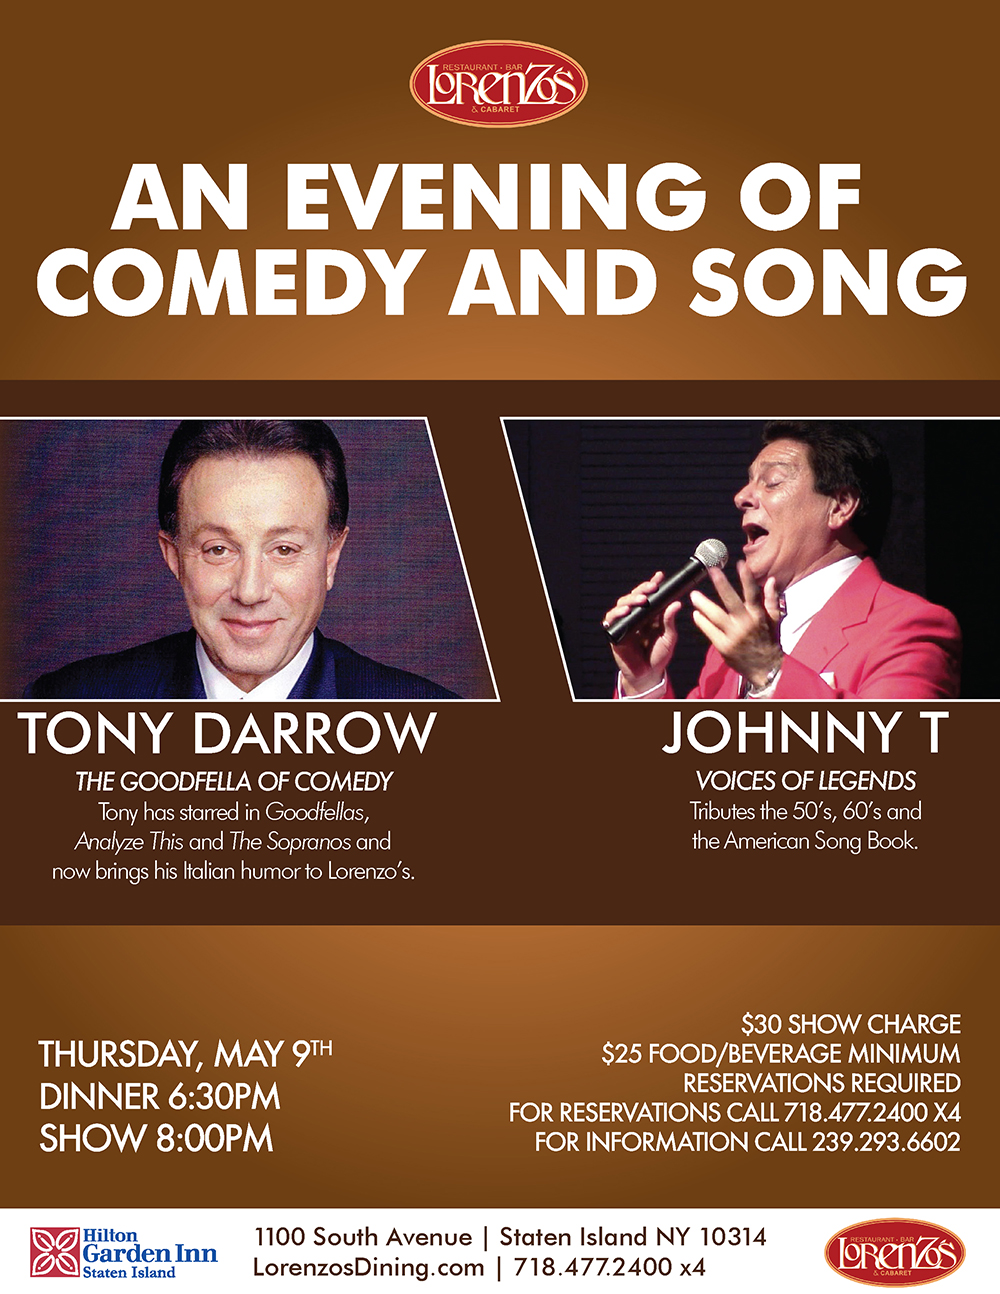 Johnny T/ Tony Darrow - An Evening of Comedy and Song